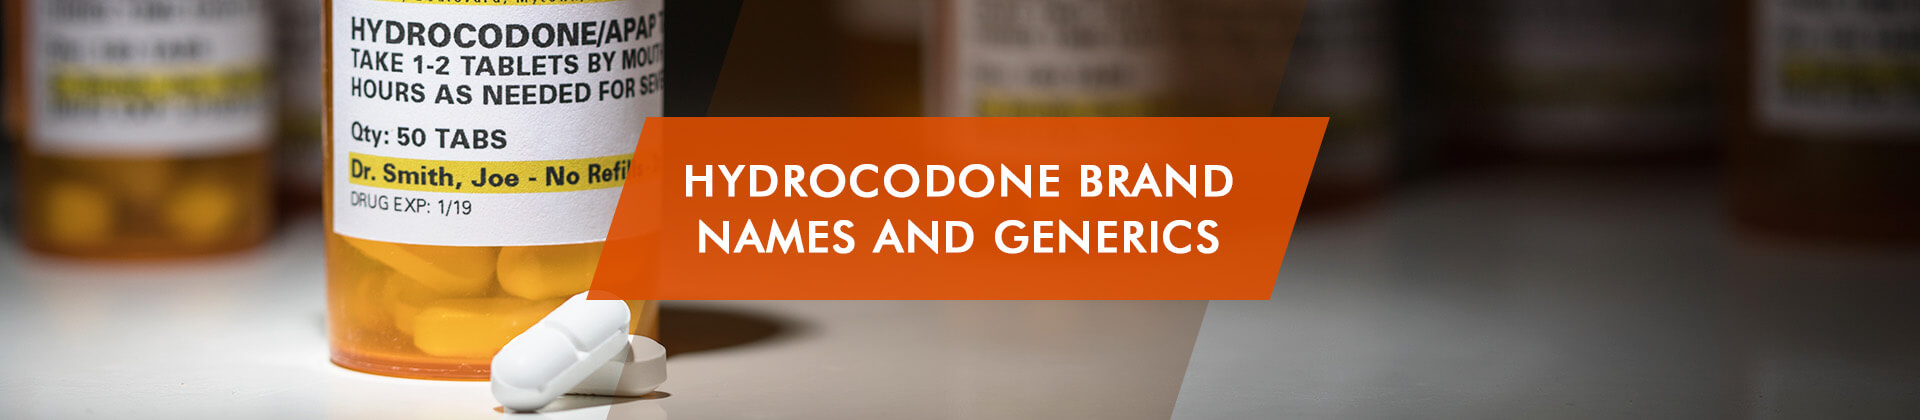 Hydrocodone Brand Names and Generic names